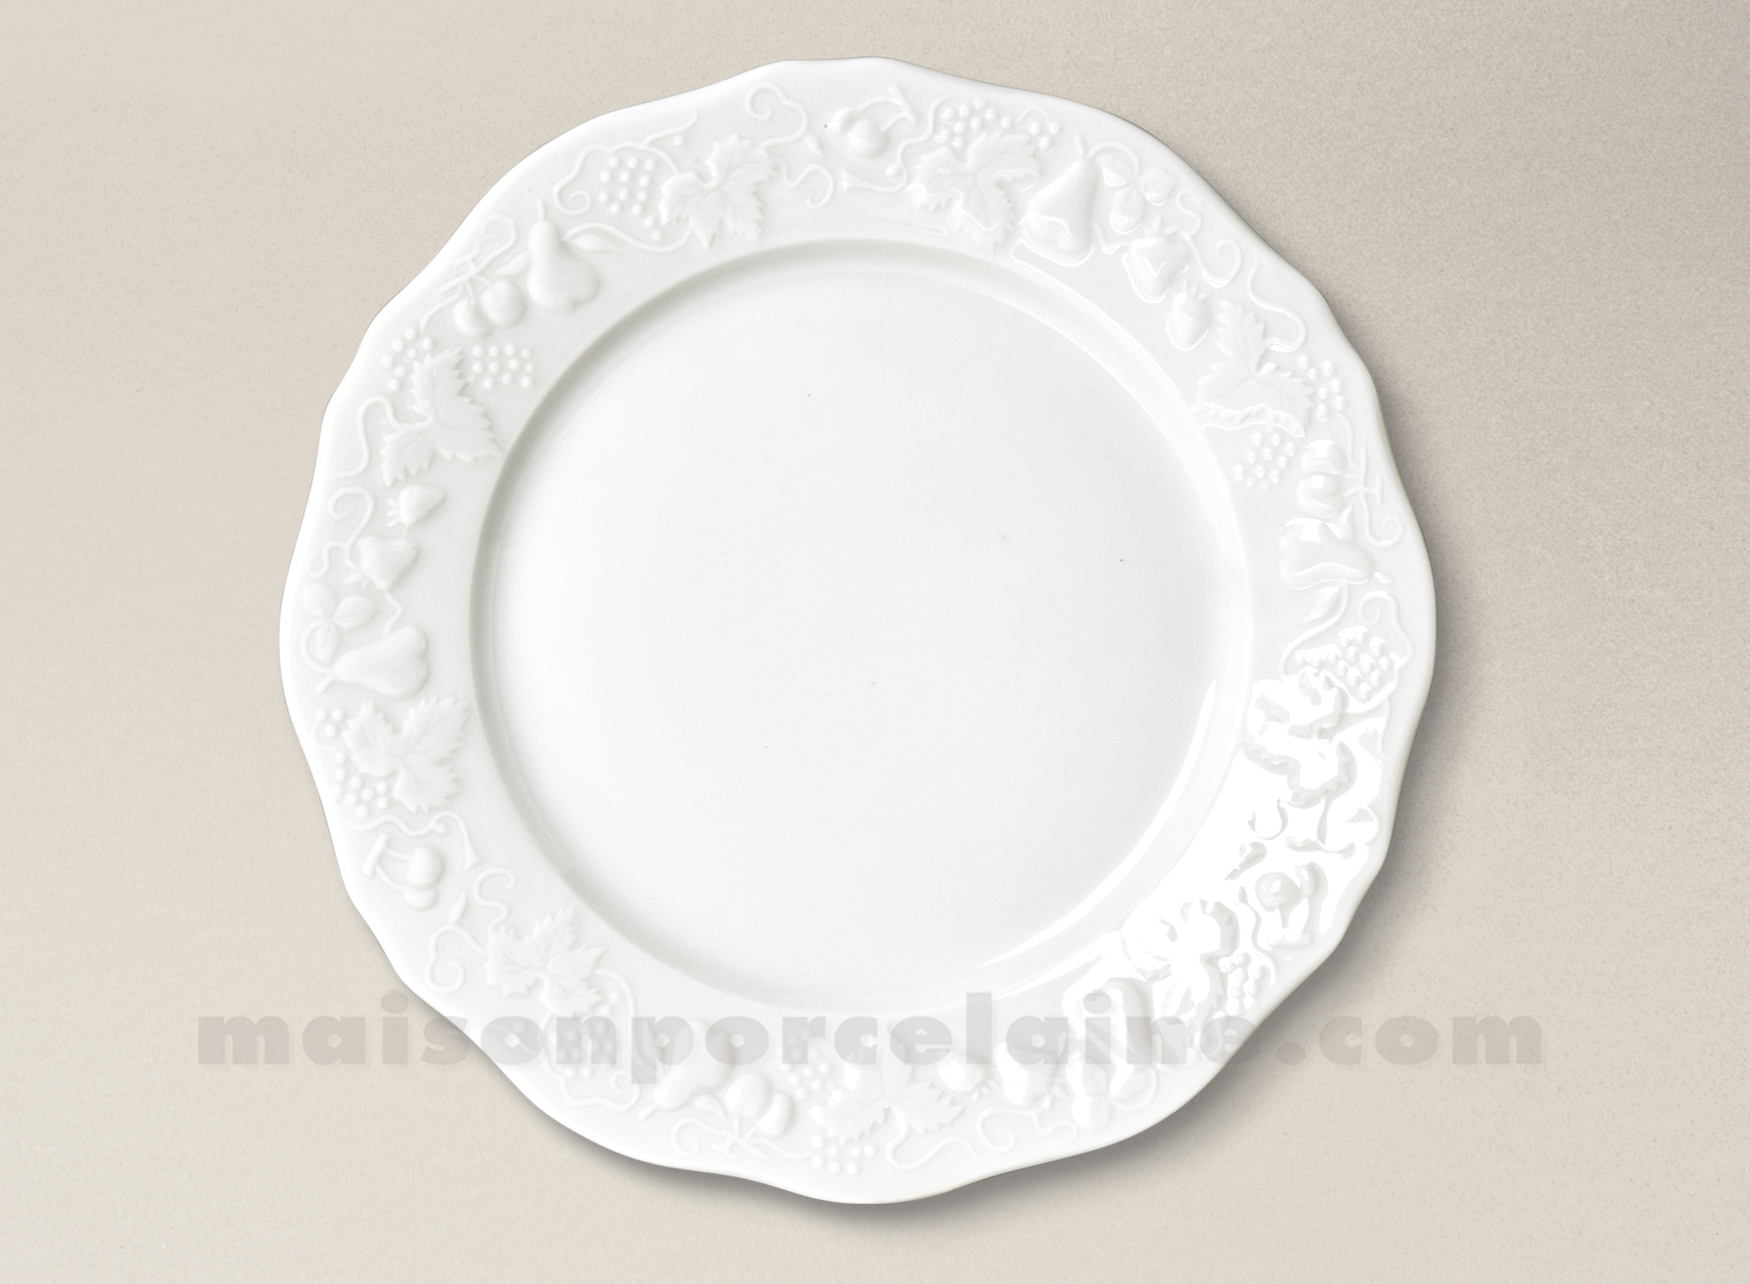 assiette plate california limoges porcelaine blanche d25 5 maison de la porcelaine. Black Bedroom Furniture Sets. Home Design Ideas